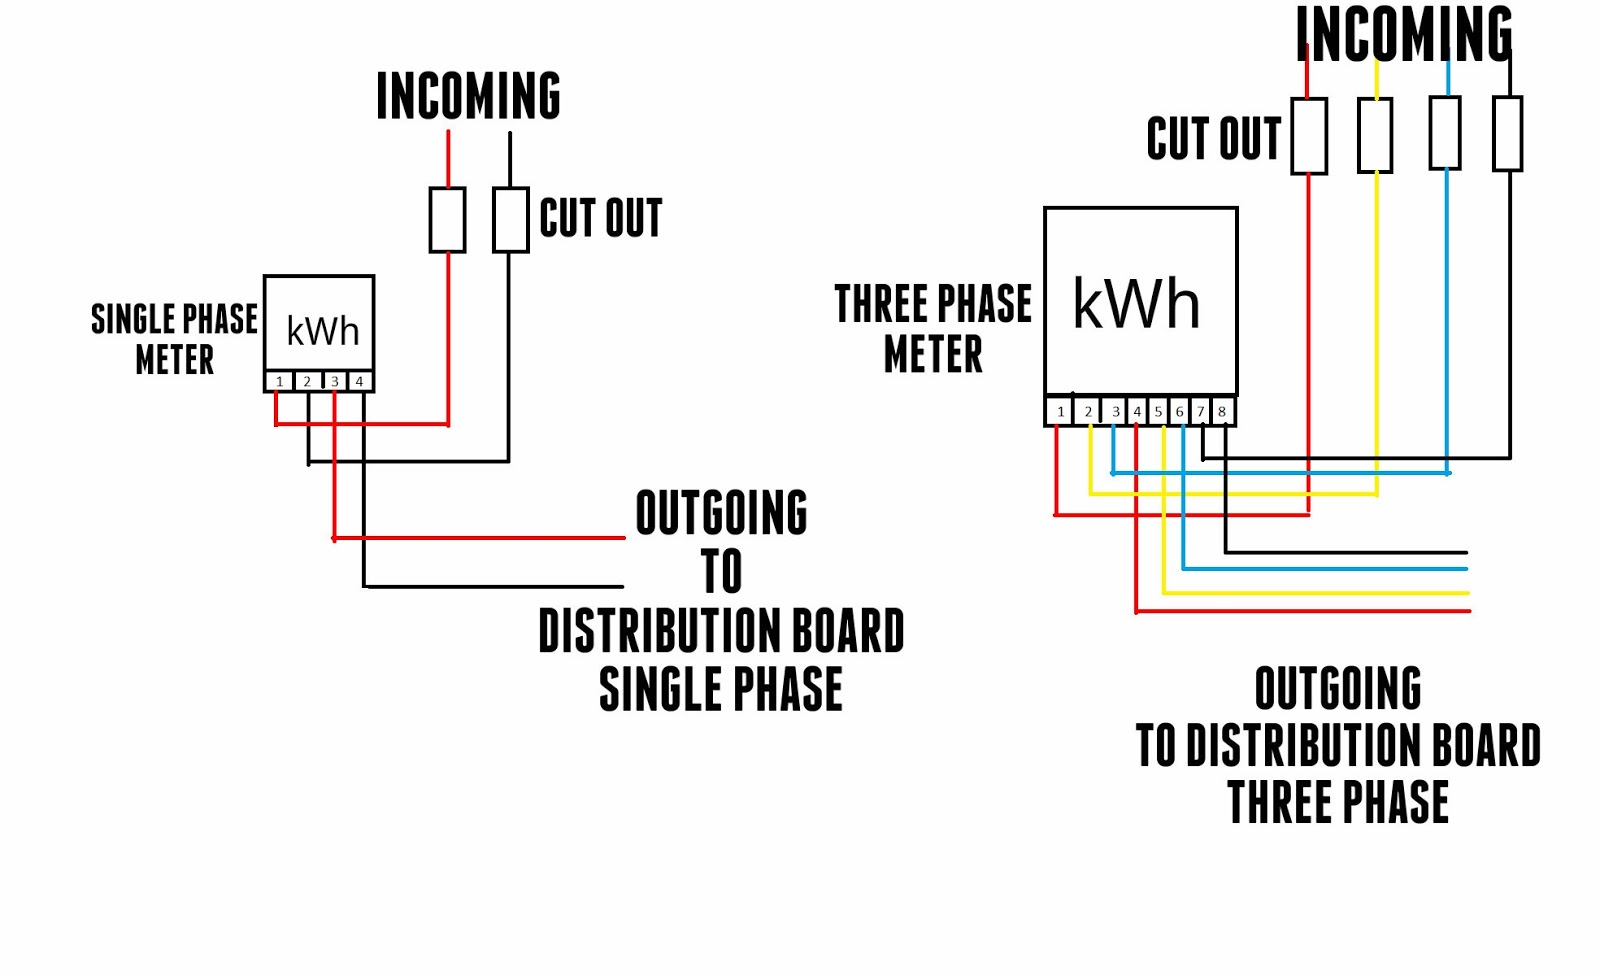 medium resolution of the world through electricity kilo watt hour meter kwh and main single phase meter wiring diagram watt hour meter wiring